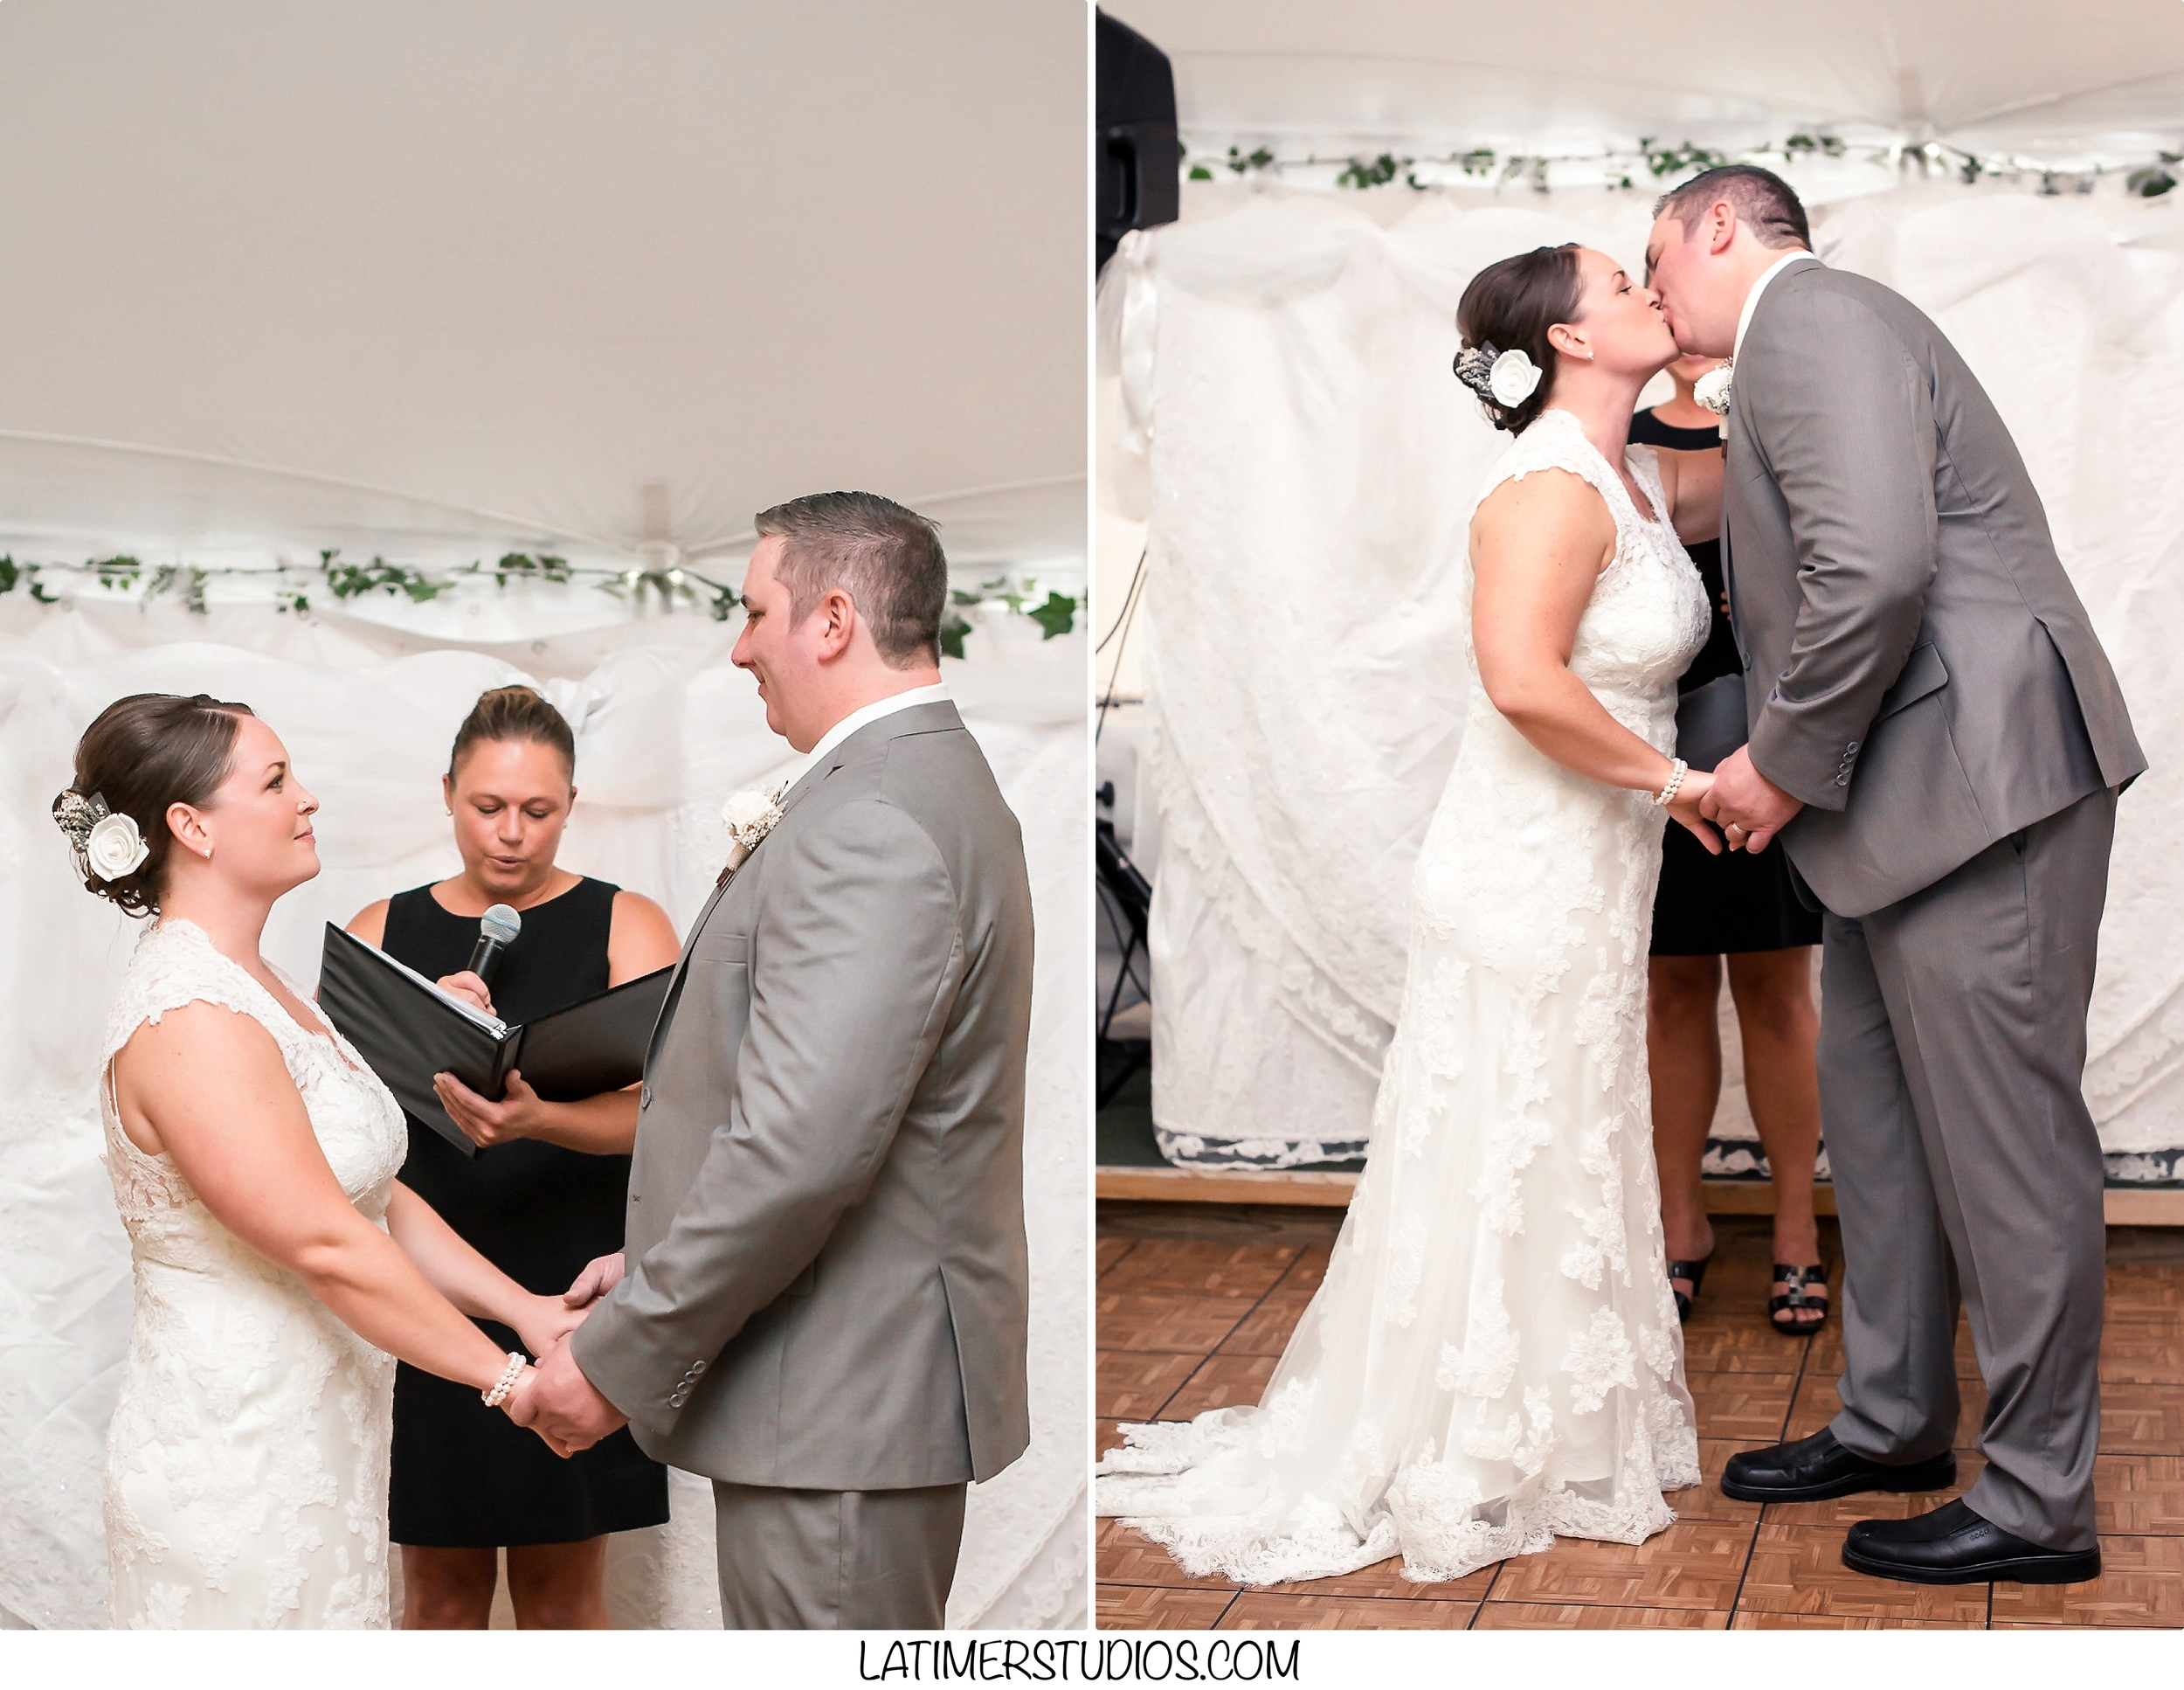 Latimer Studios Photography capturing a first kiss at a  wedding at Mile Away Restaurant in Milford NH